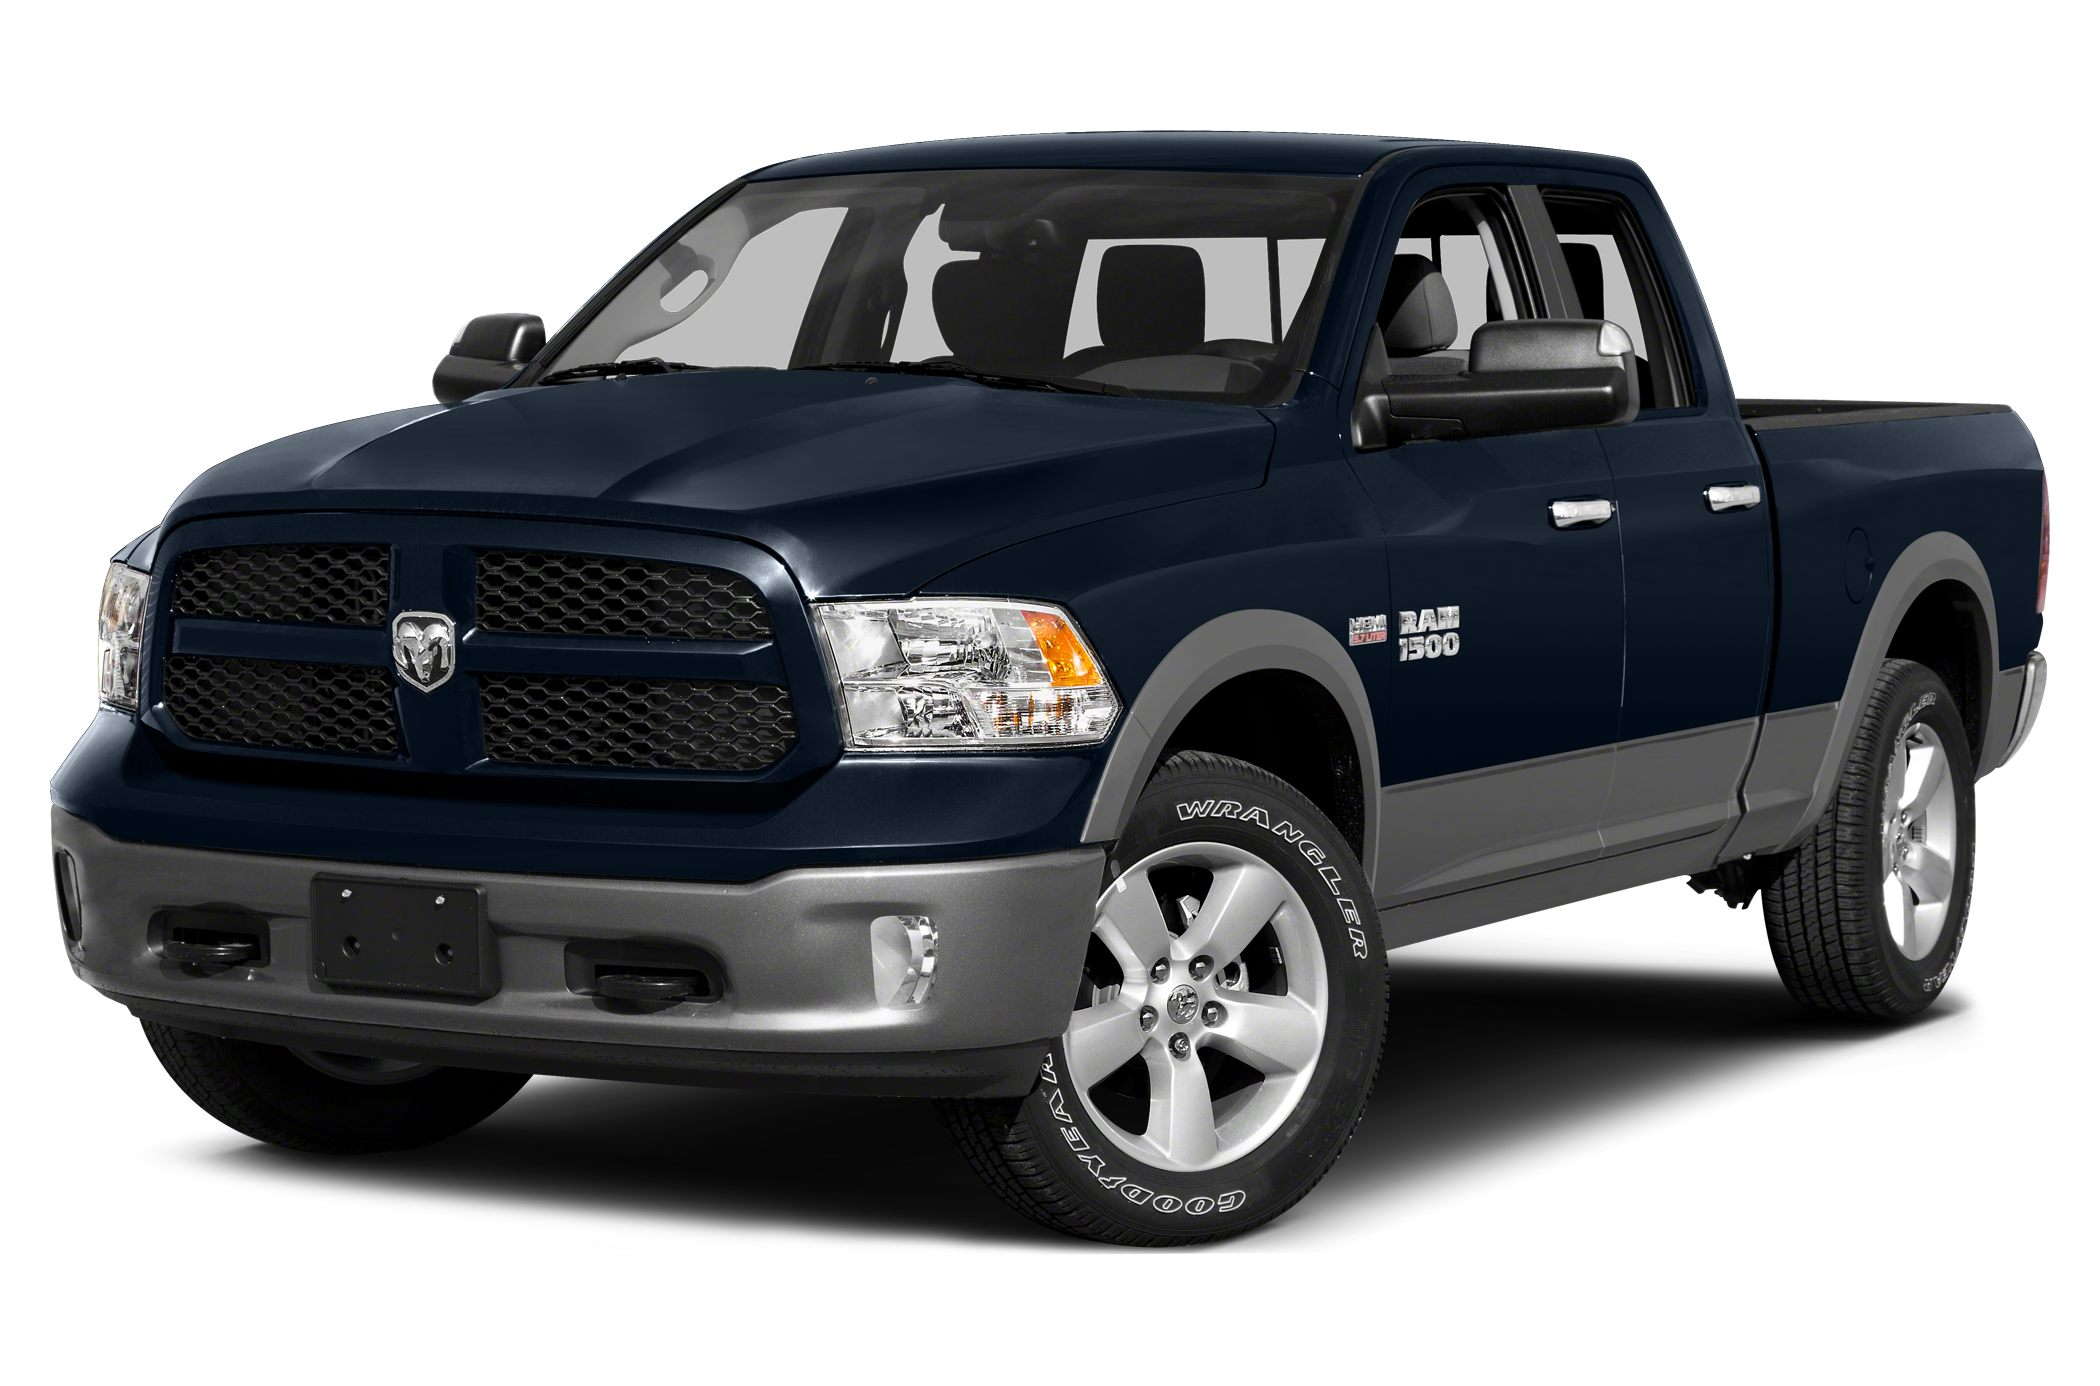 2015 RAM 1500 Laramie Crew Cab Pickup for sale in Castle Rock for $48,945 with 1 miles.